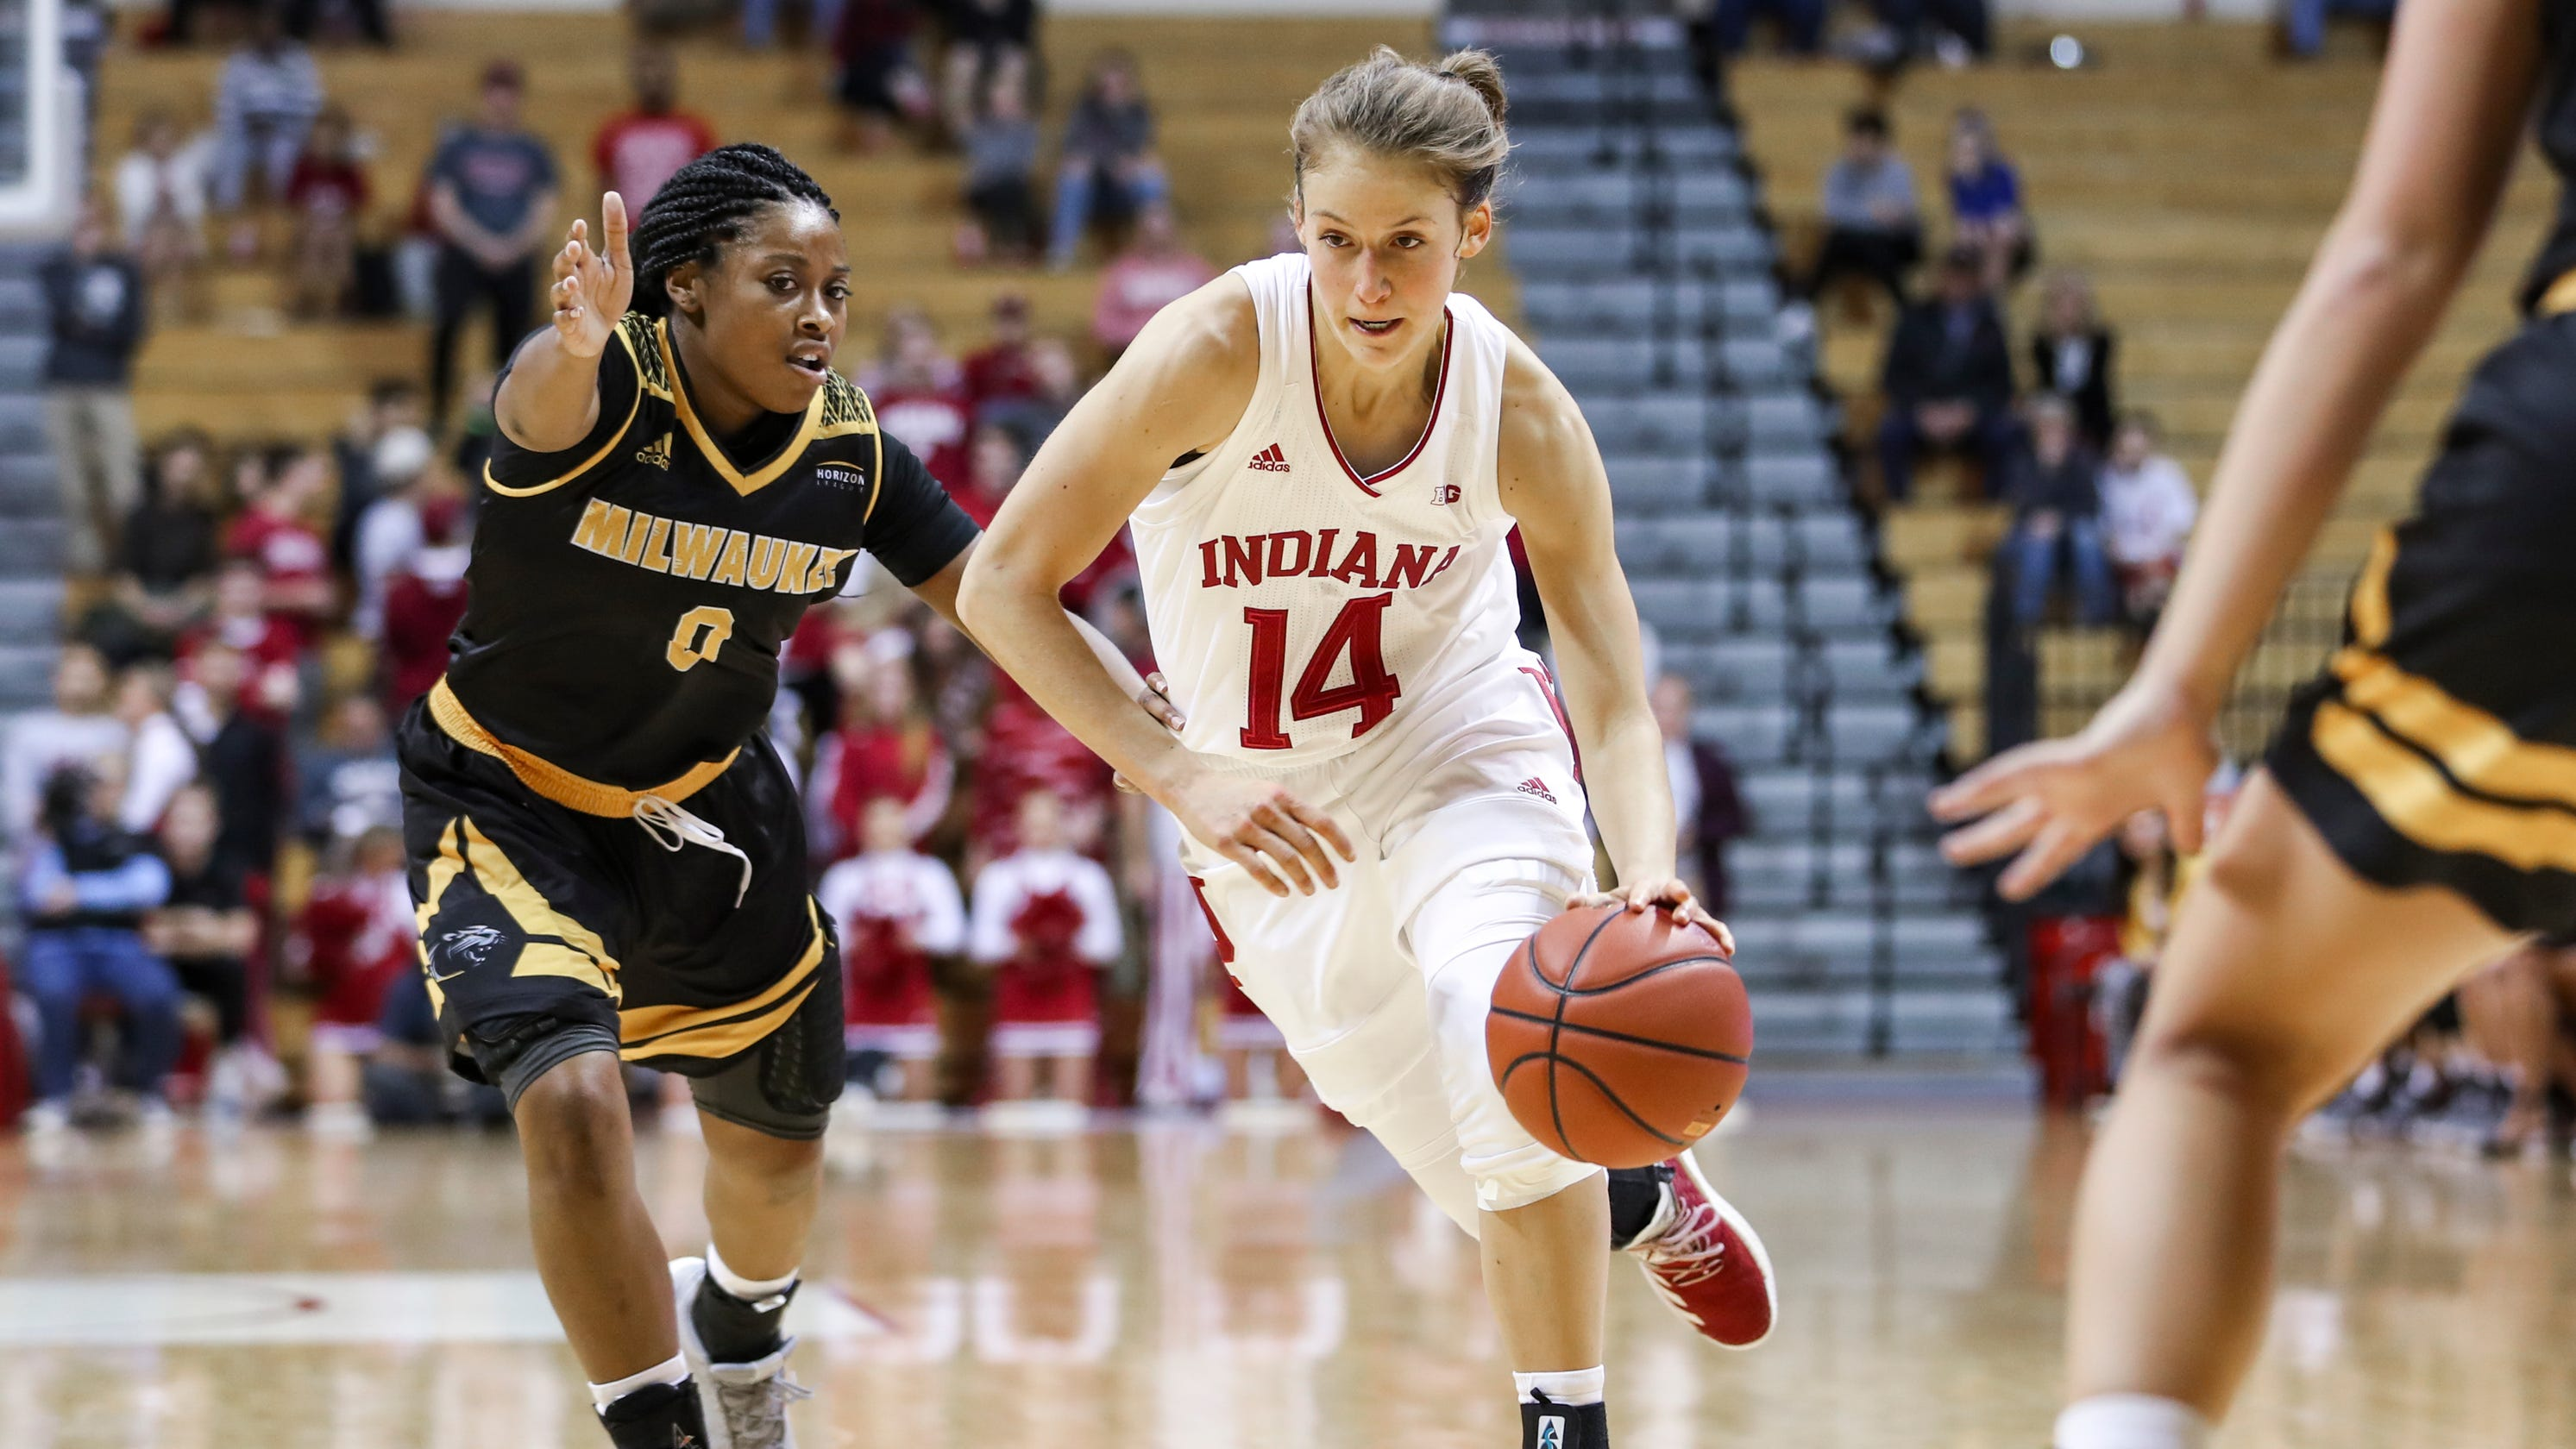 e0d67f14e2 After leaving Notre Dame, Ali Patberg figuring things out with IU